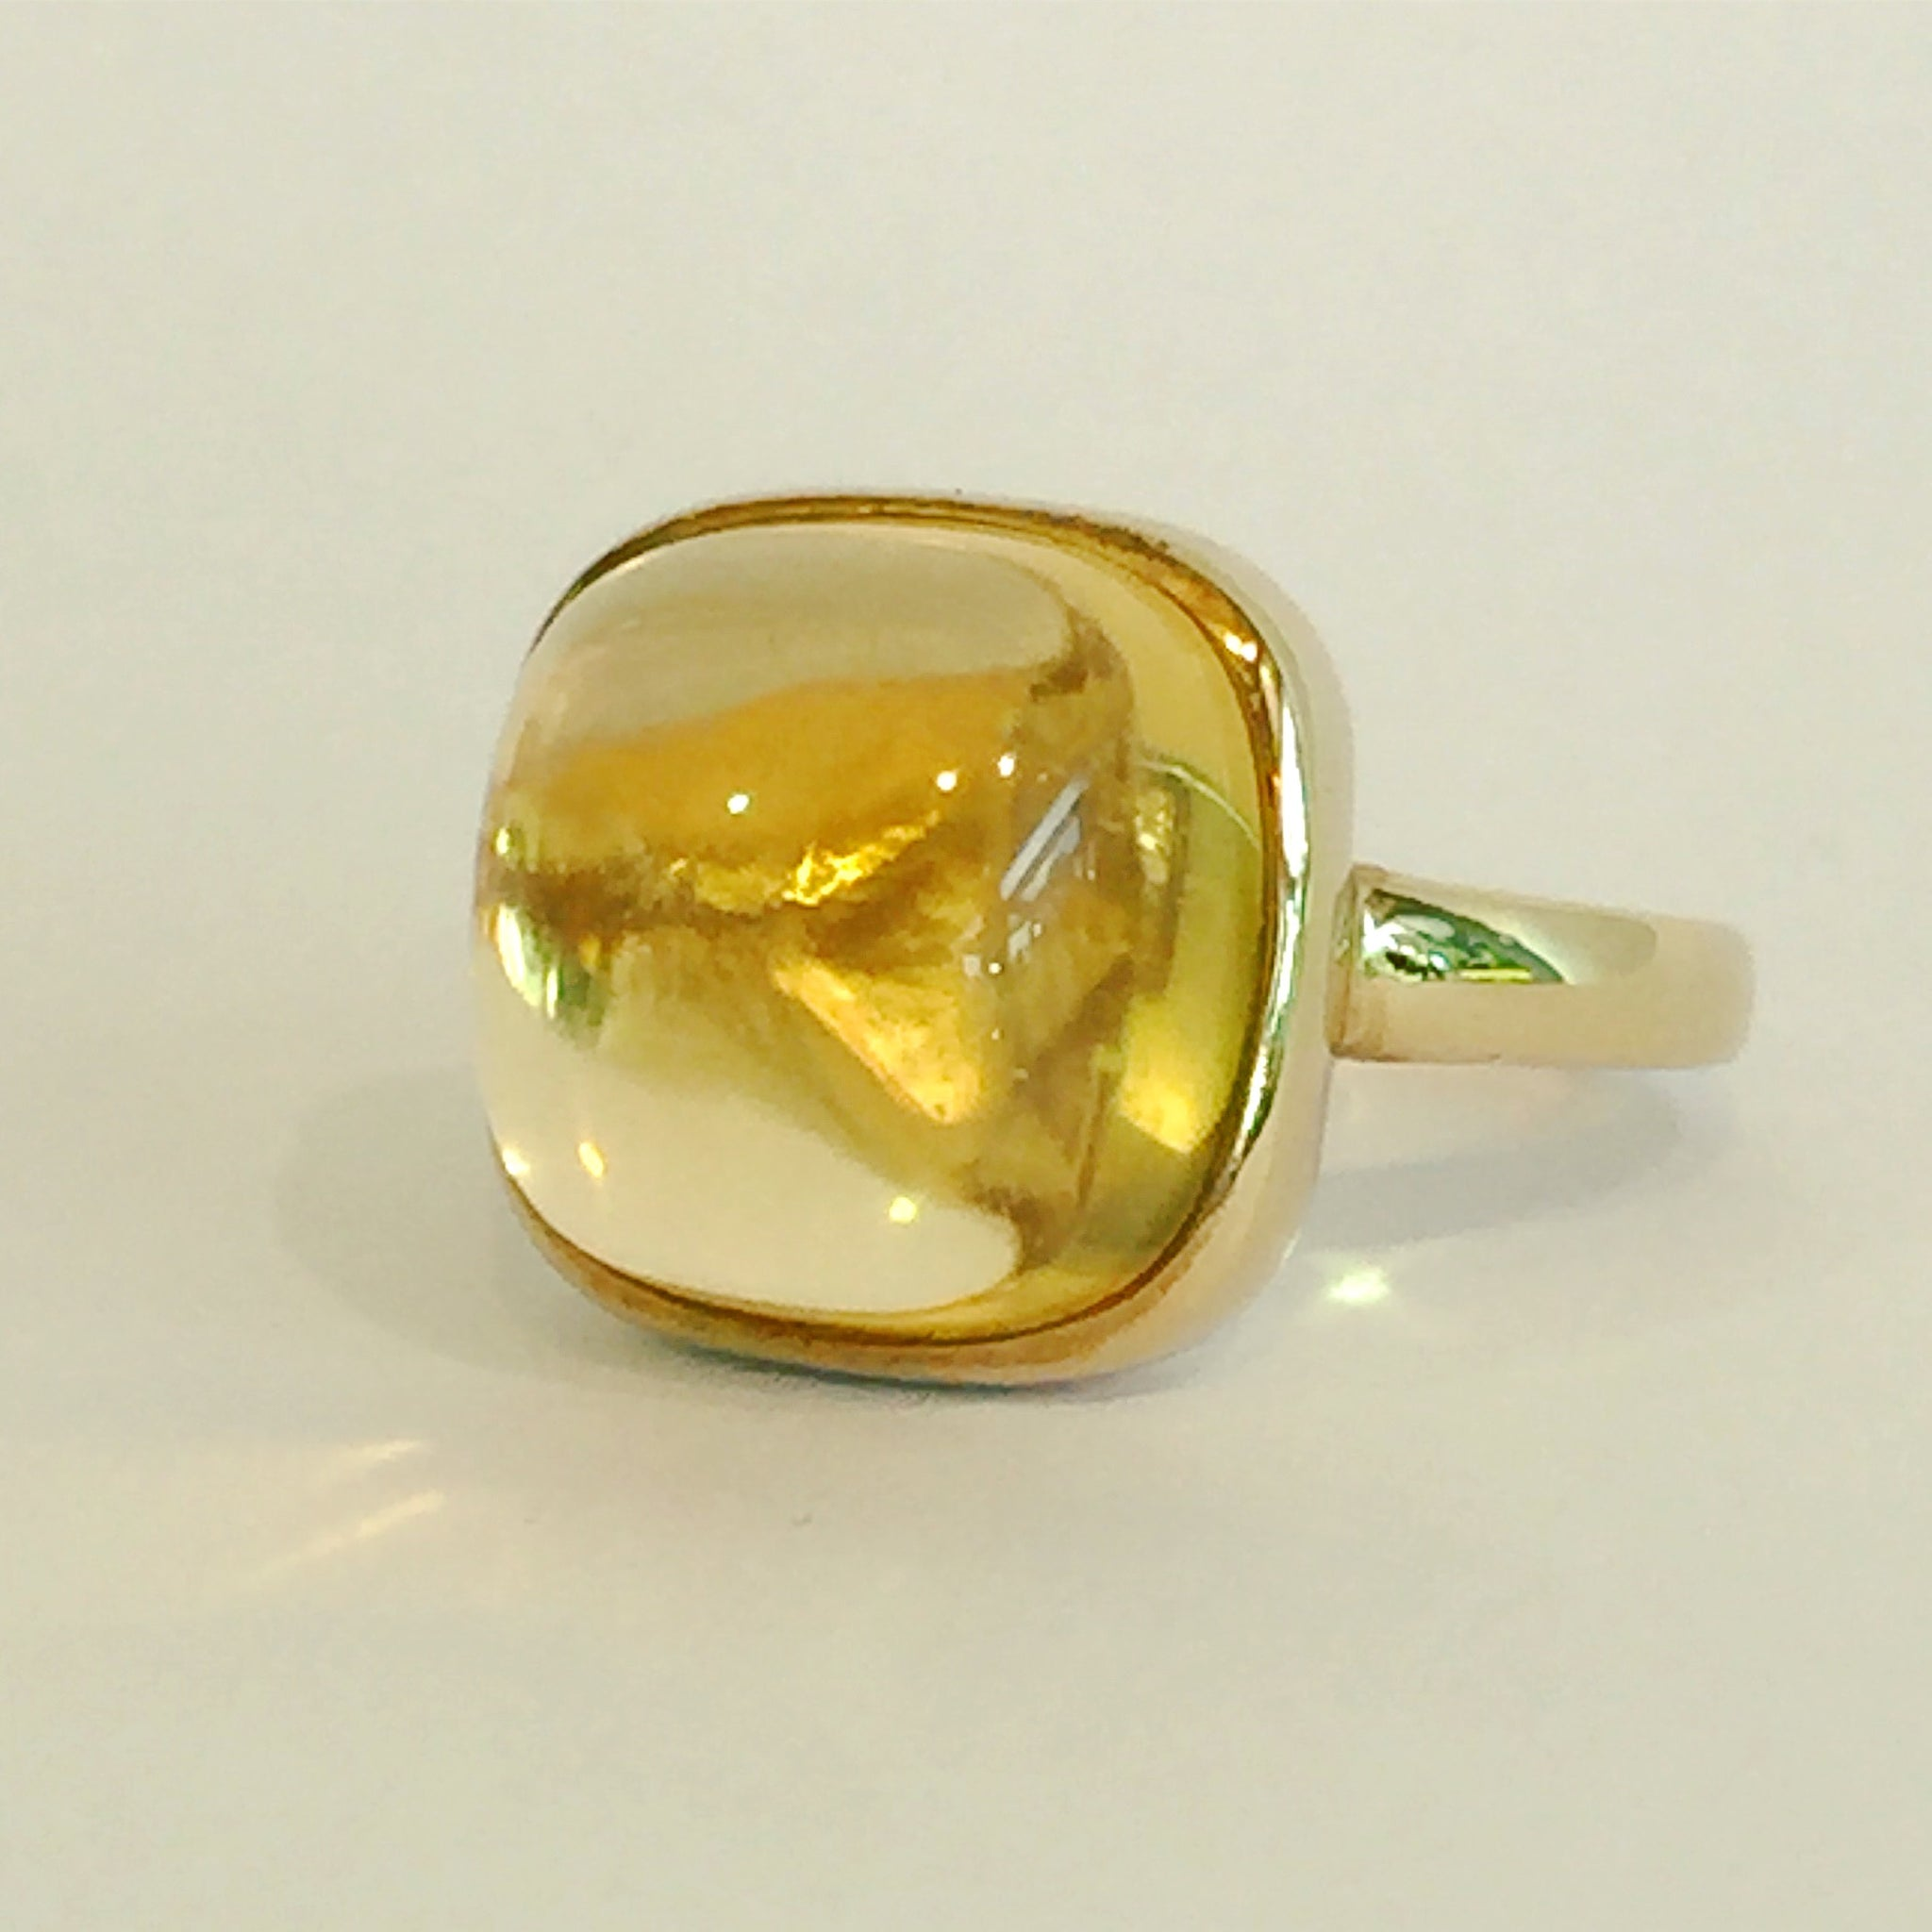 9ct Yellow Gold Citrine Cabochon Ring